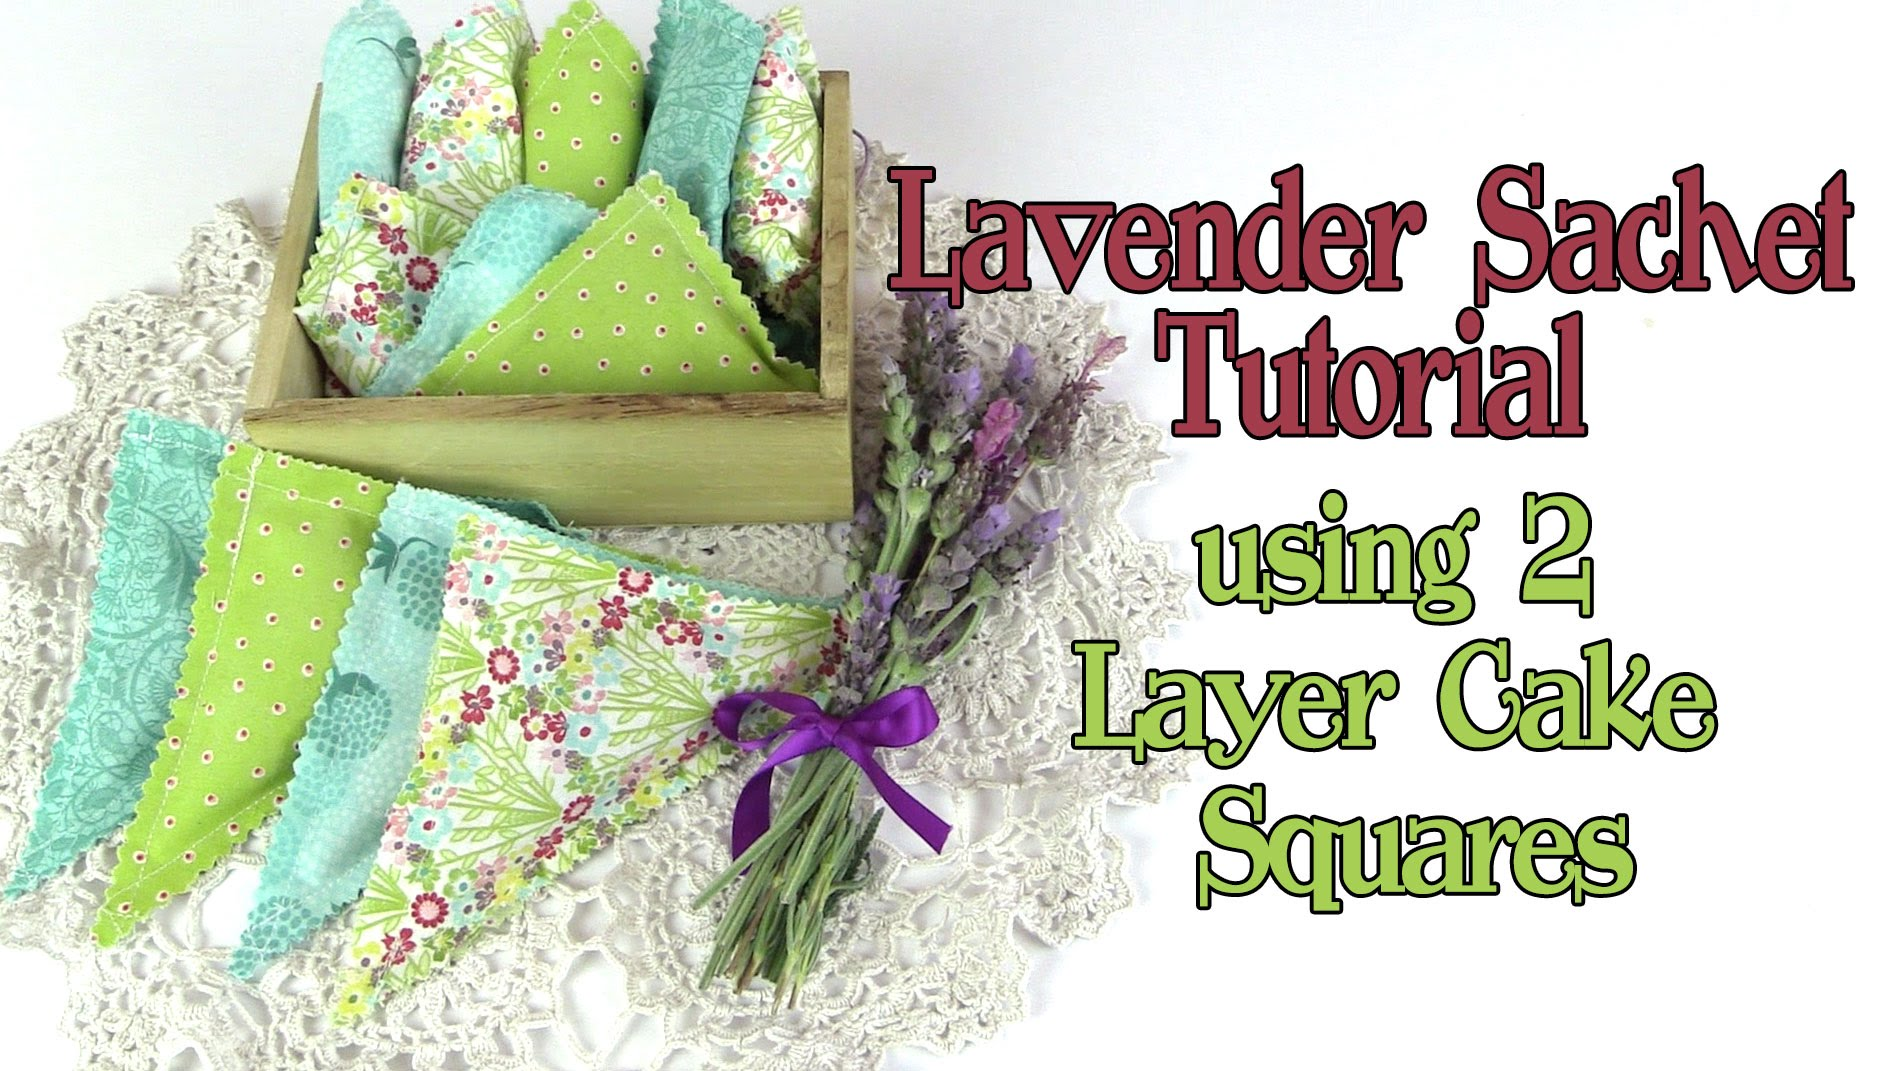 Lavender Sachet Tutorial - Easy sewing projects for beginners